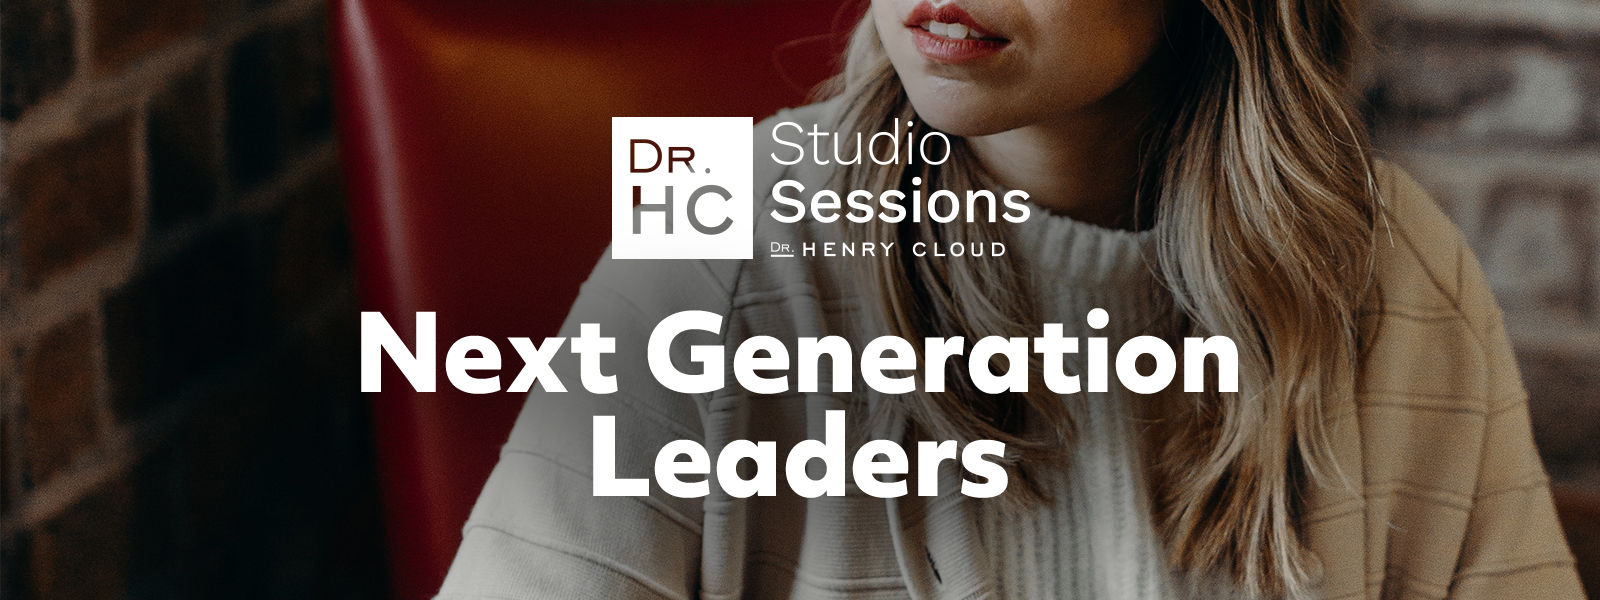 Next Generation Leaders